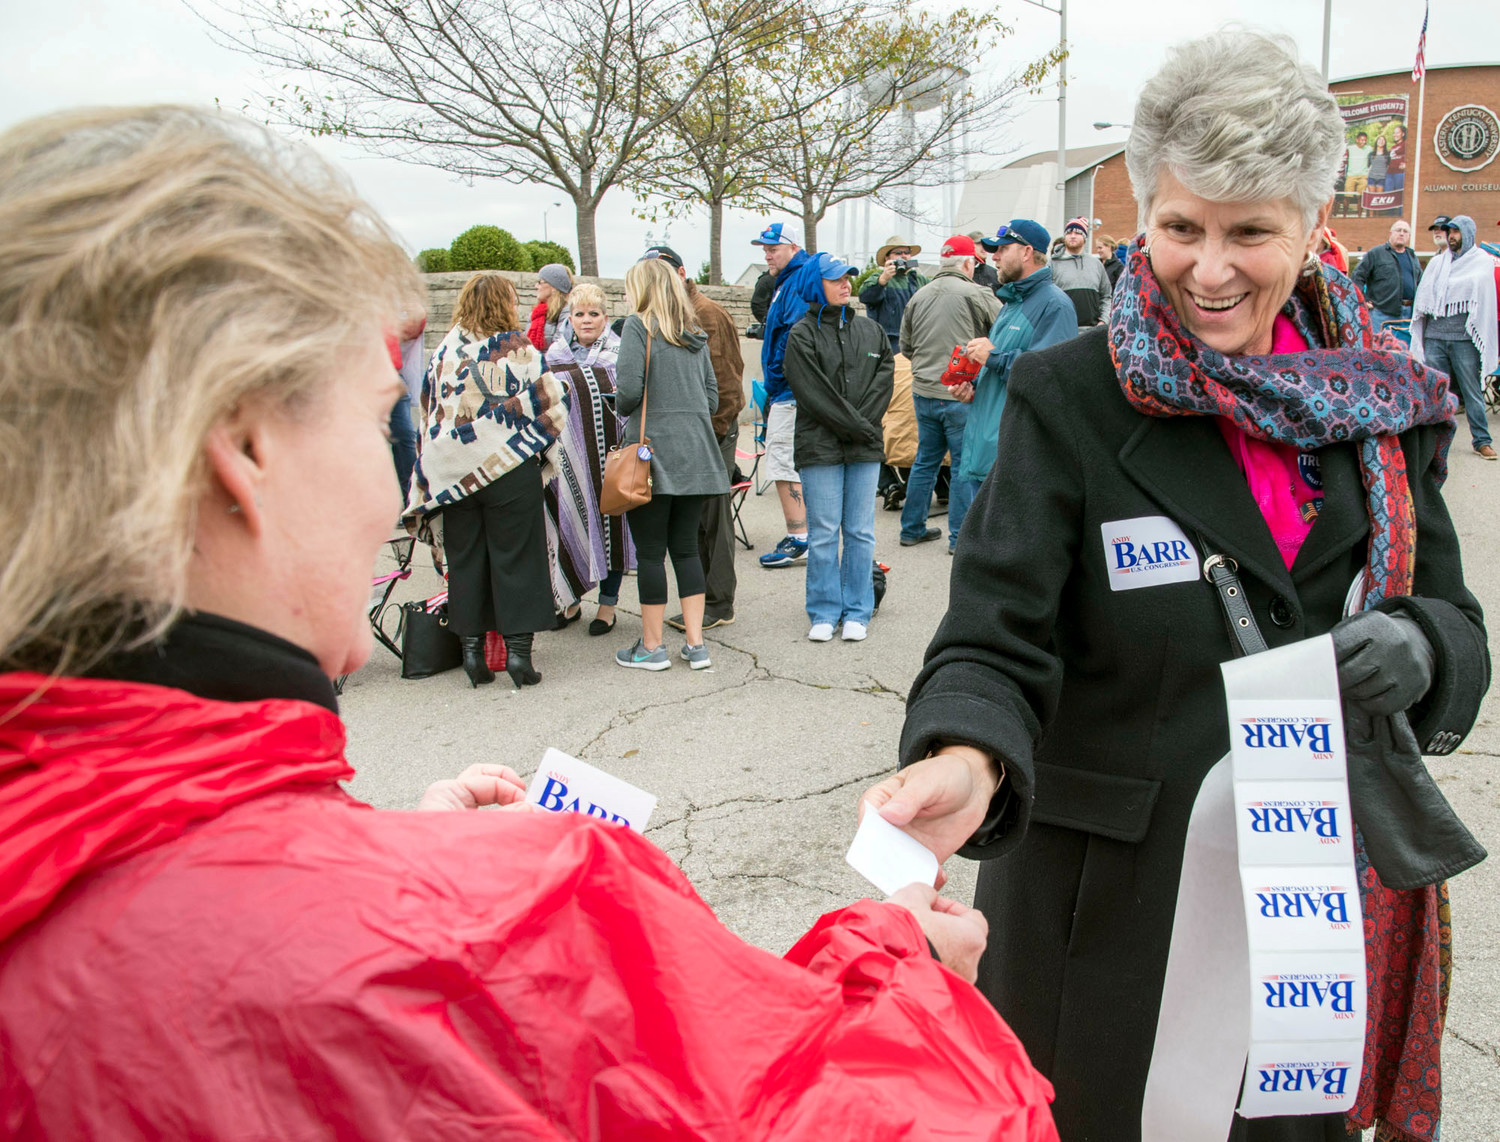 Paula Mauck, right, a campaign volunteer for U.S. Rep. Andy Barr, hands out campaign stickers Saturday October 13, 2018, before a campaign rally for U.S. Rep. Andy Barr, R-Ky., in Richmond, Ky. Barr faces Democrat Amy McGrath in the November general election. Photo by John Flavell / For Kentucky Today)